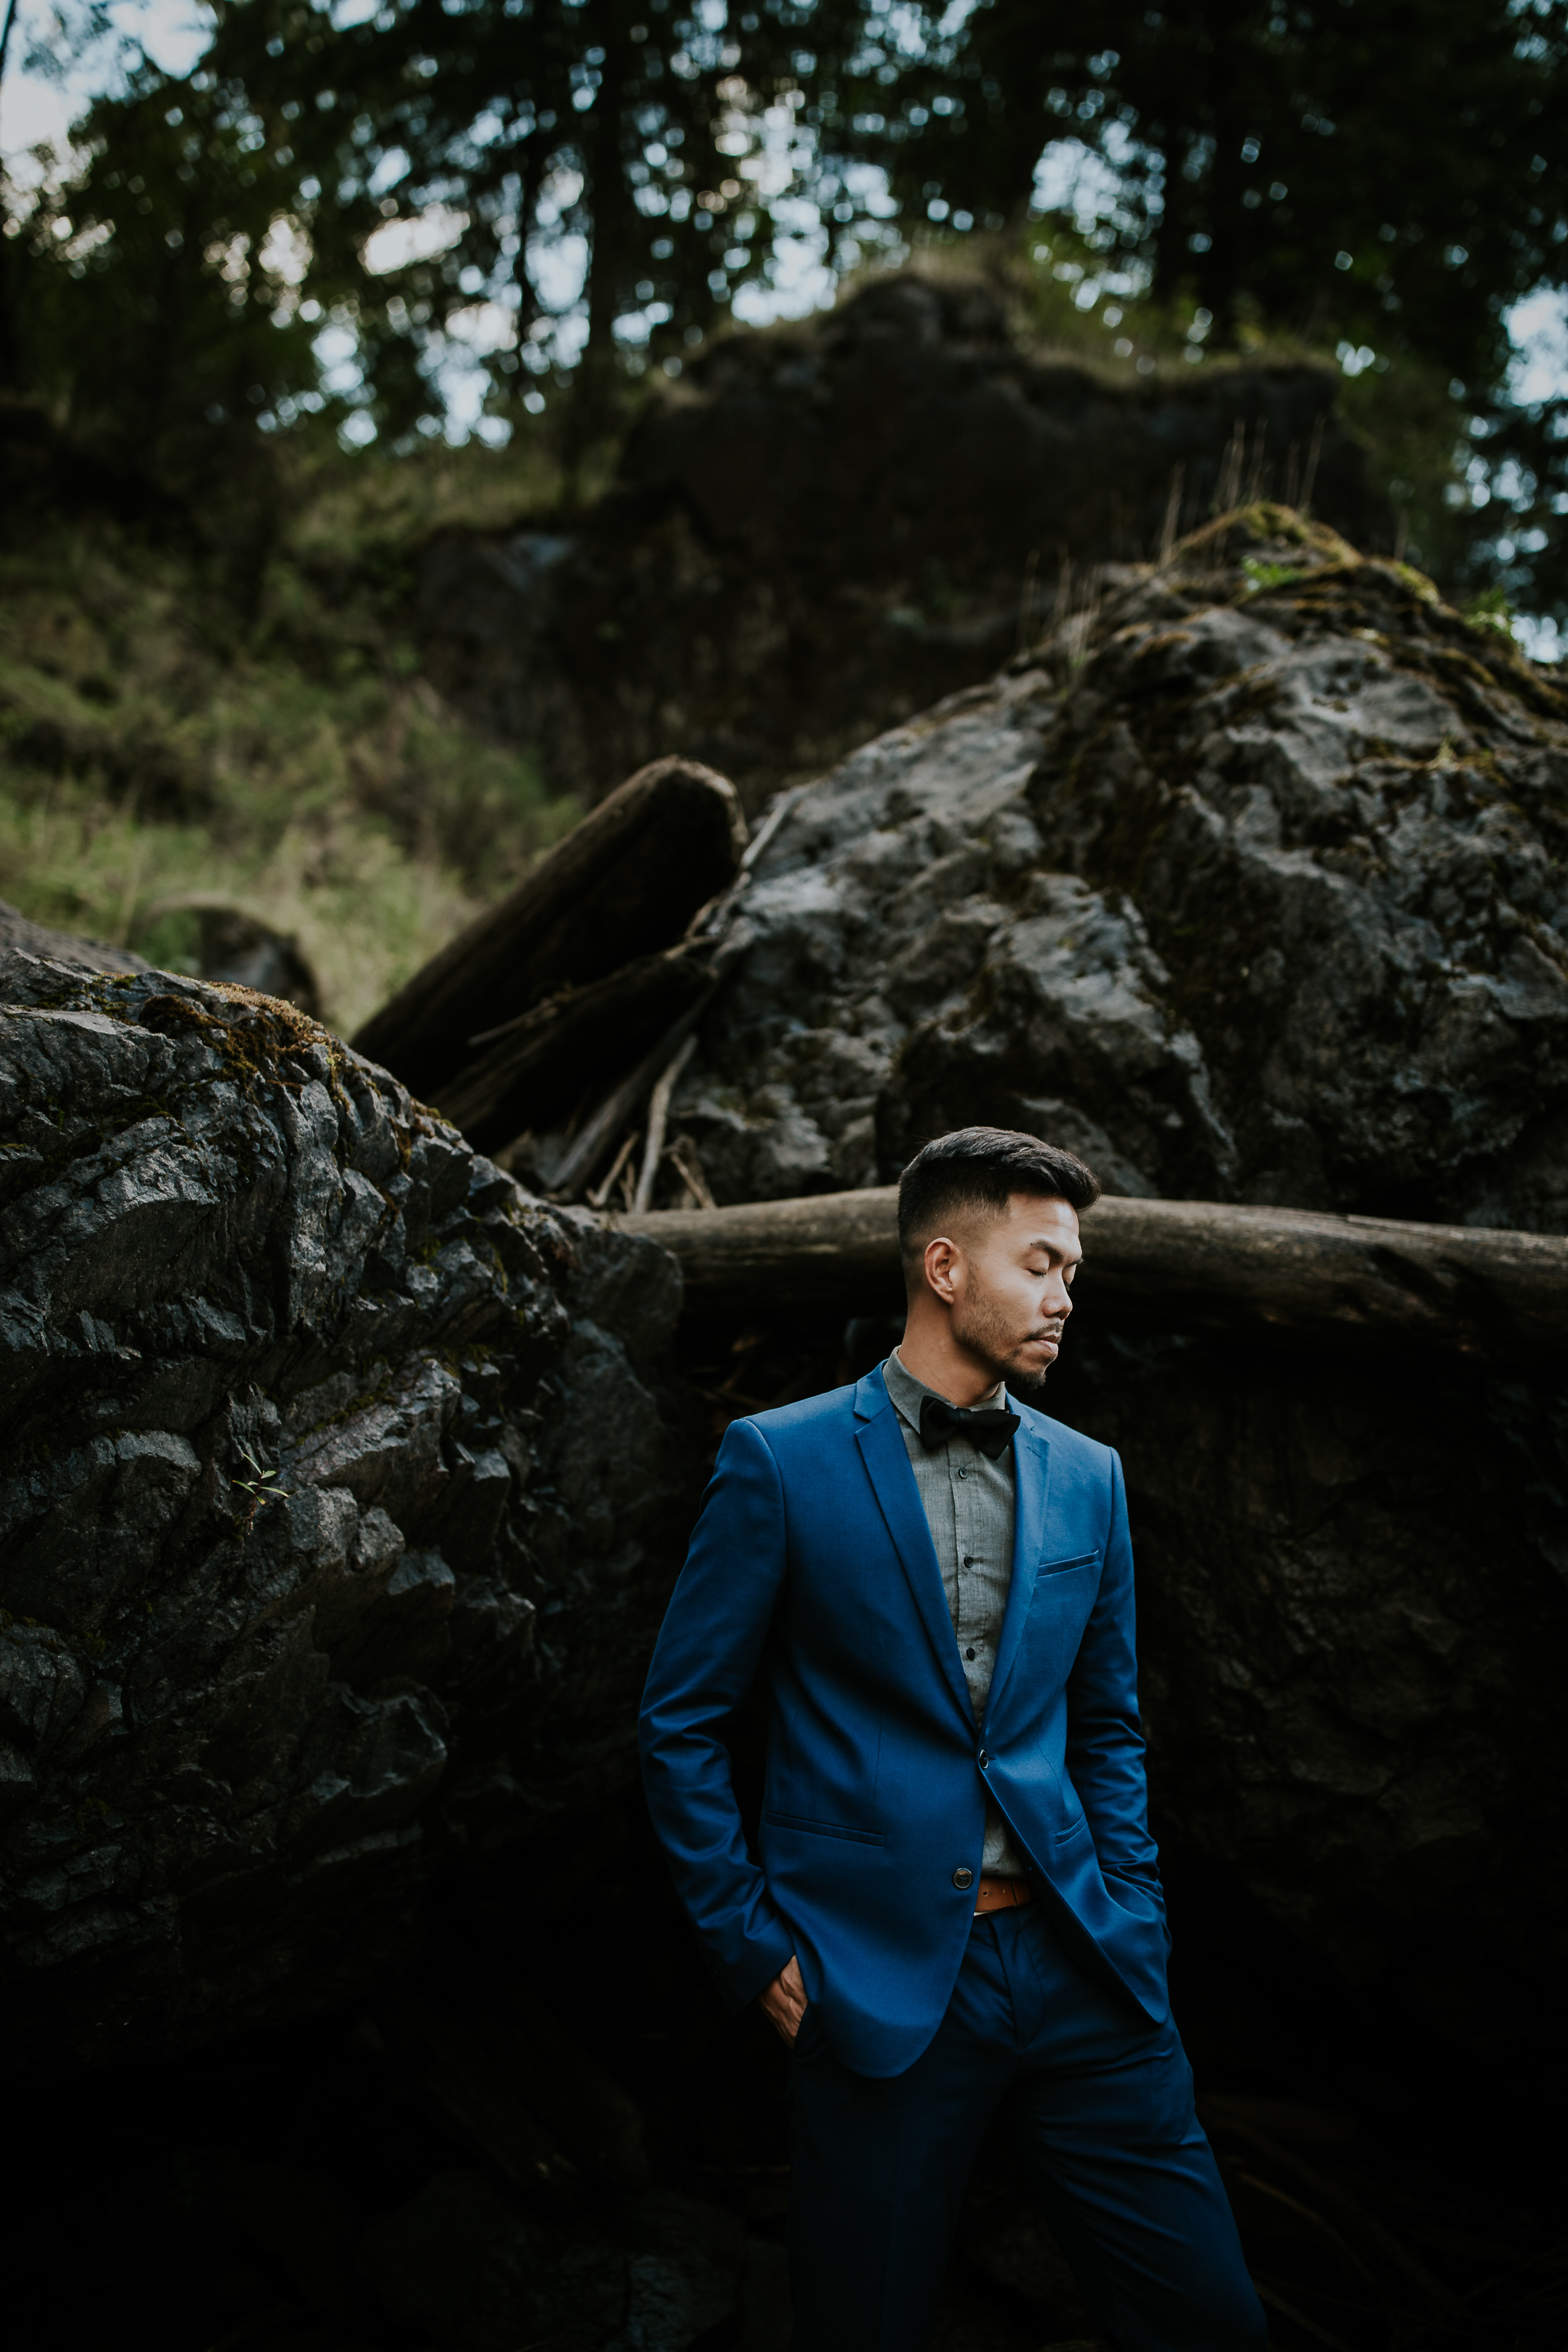 Groom wearing blue suit standing in front of black rocks at Snoqualmie falls elopement